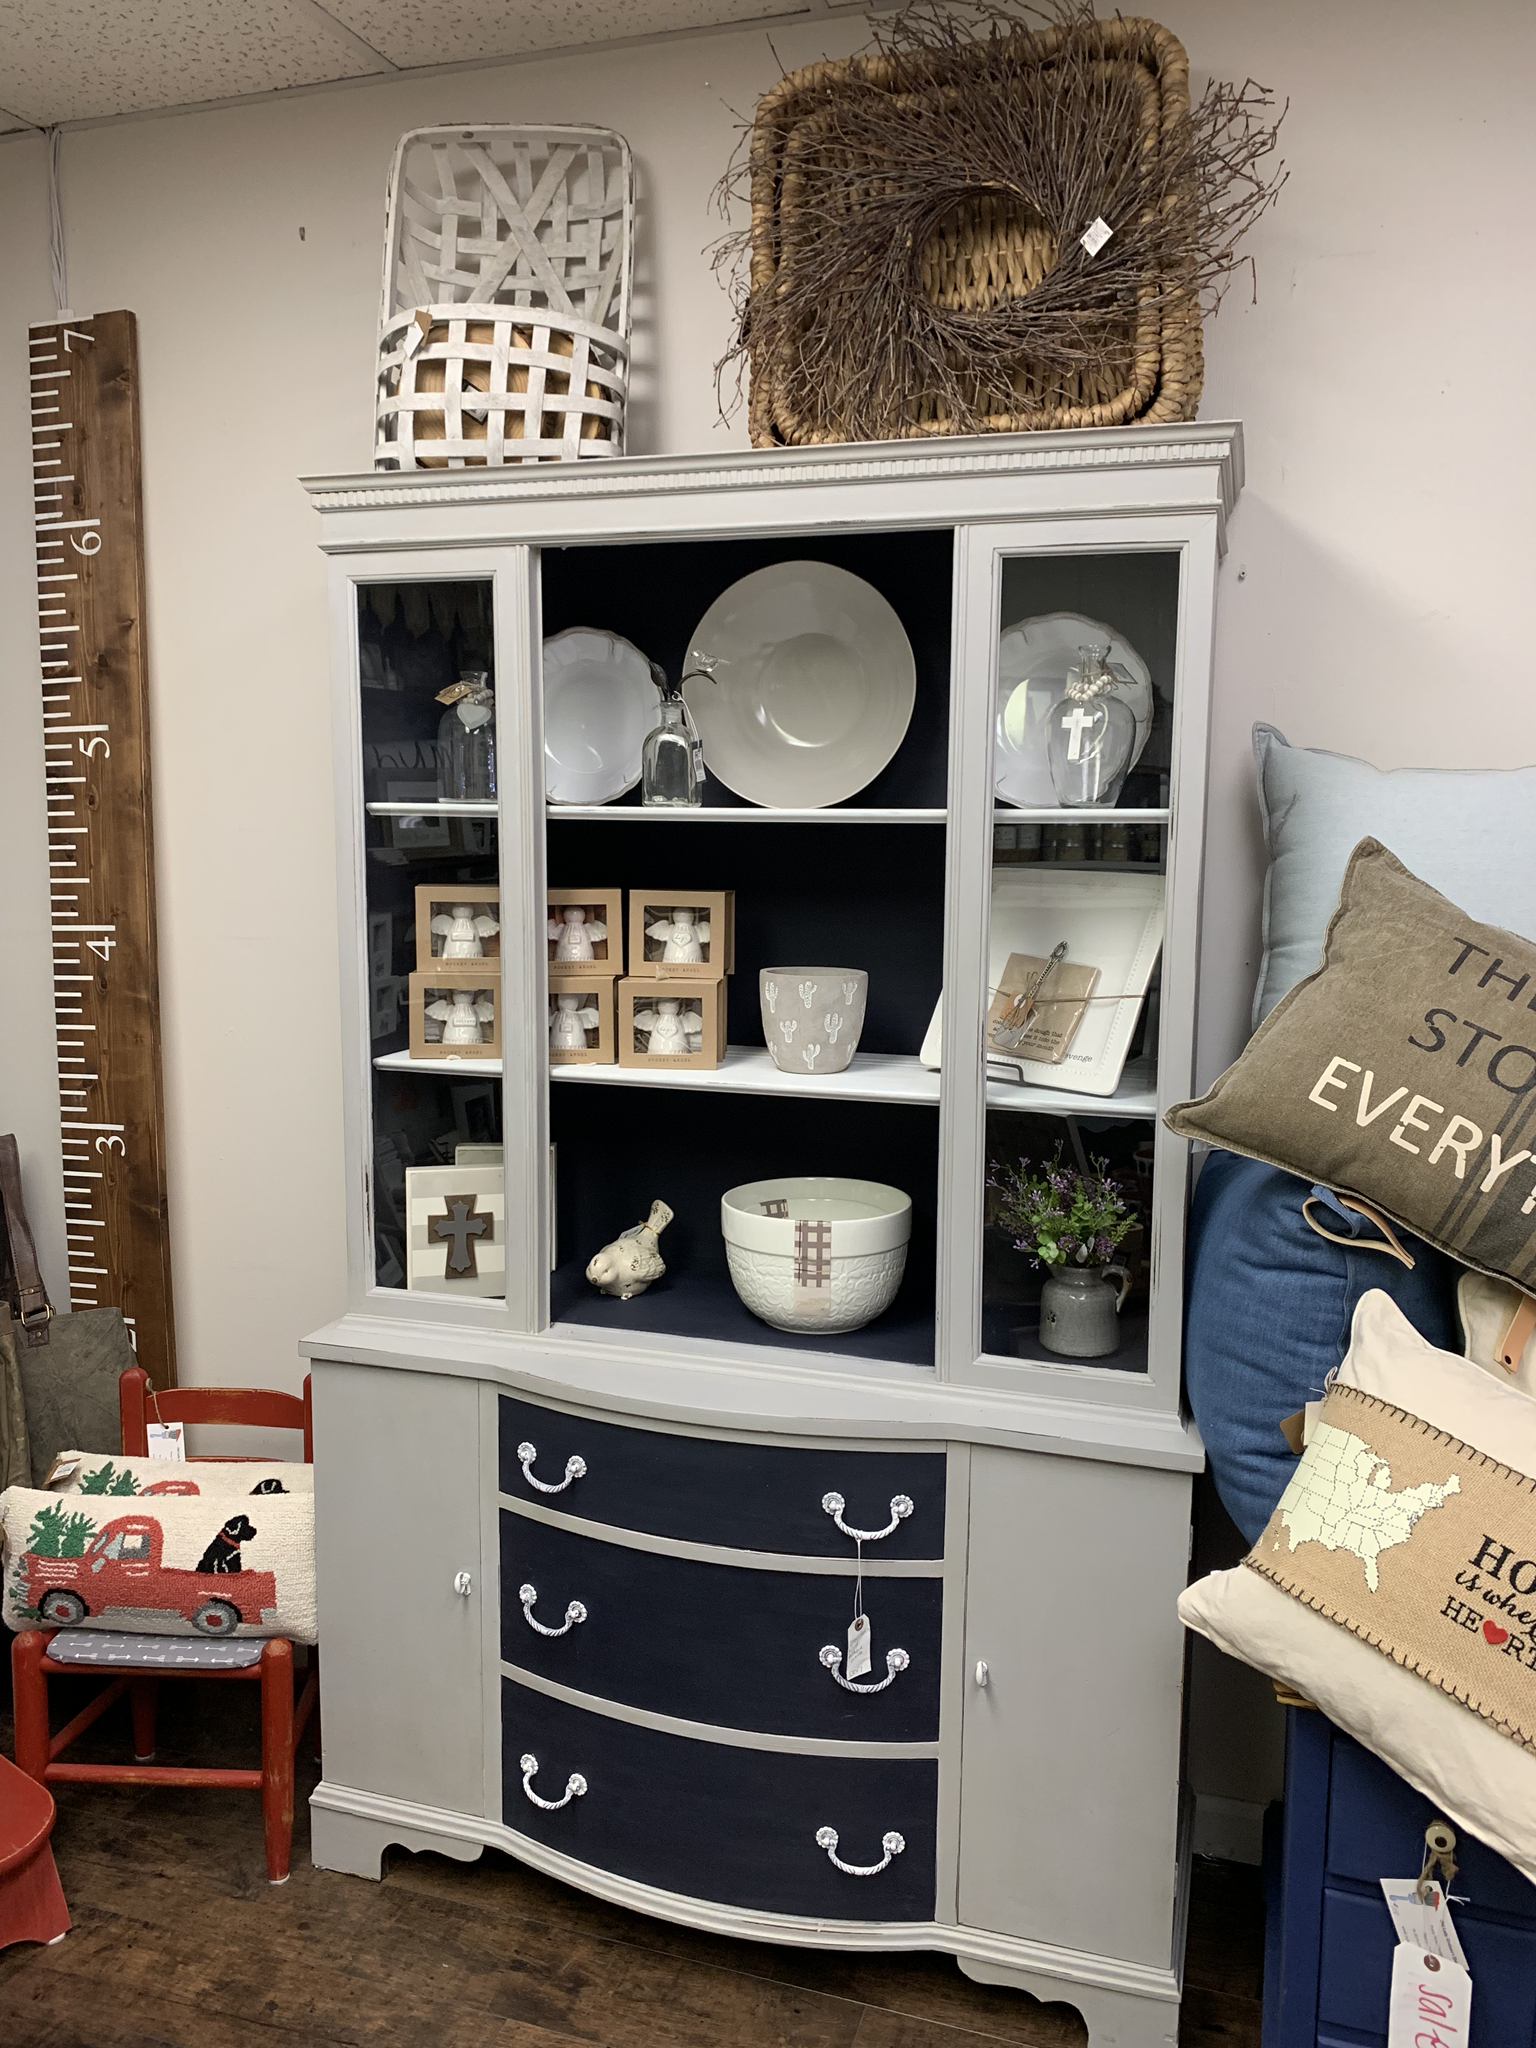 SSC Grey China Hutch With Navy Interior White Shelves.  sscf7